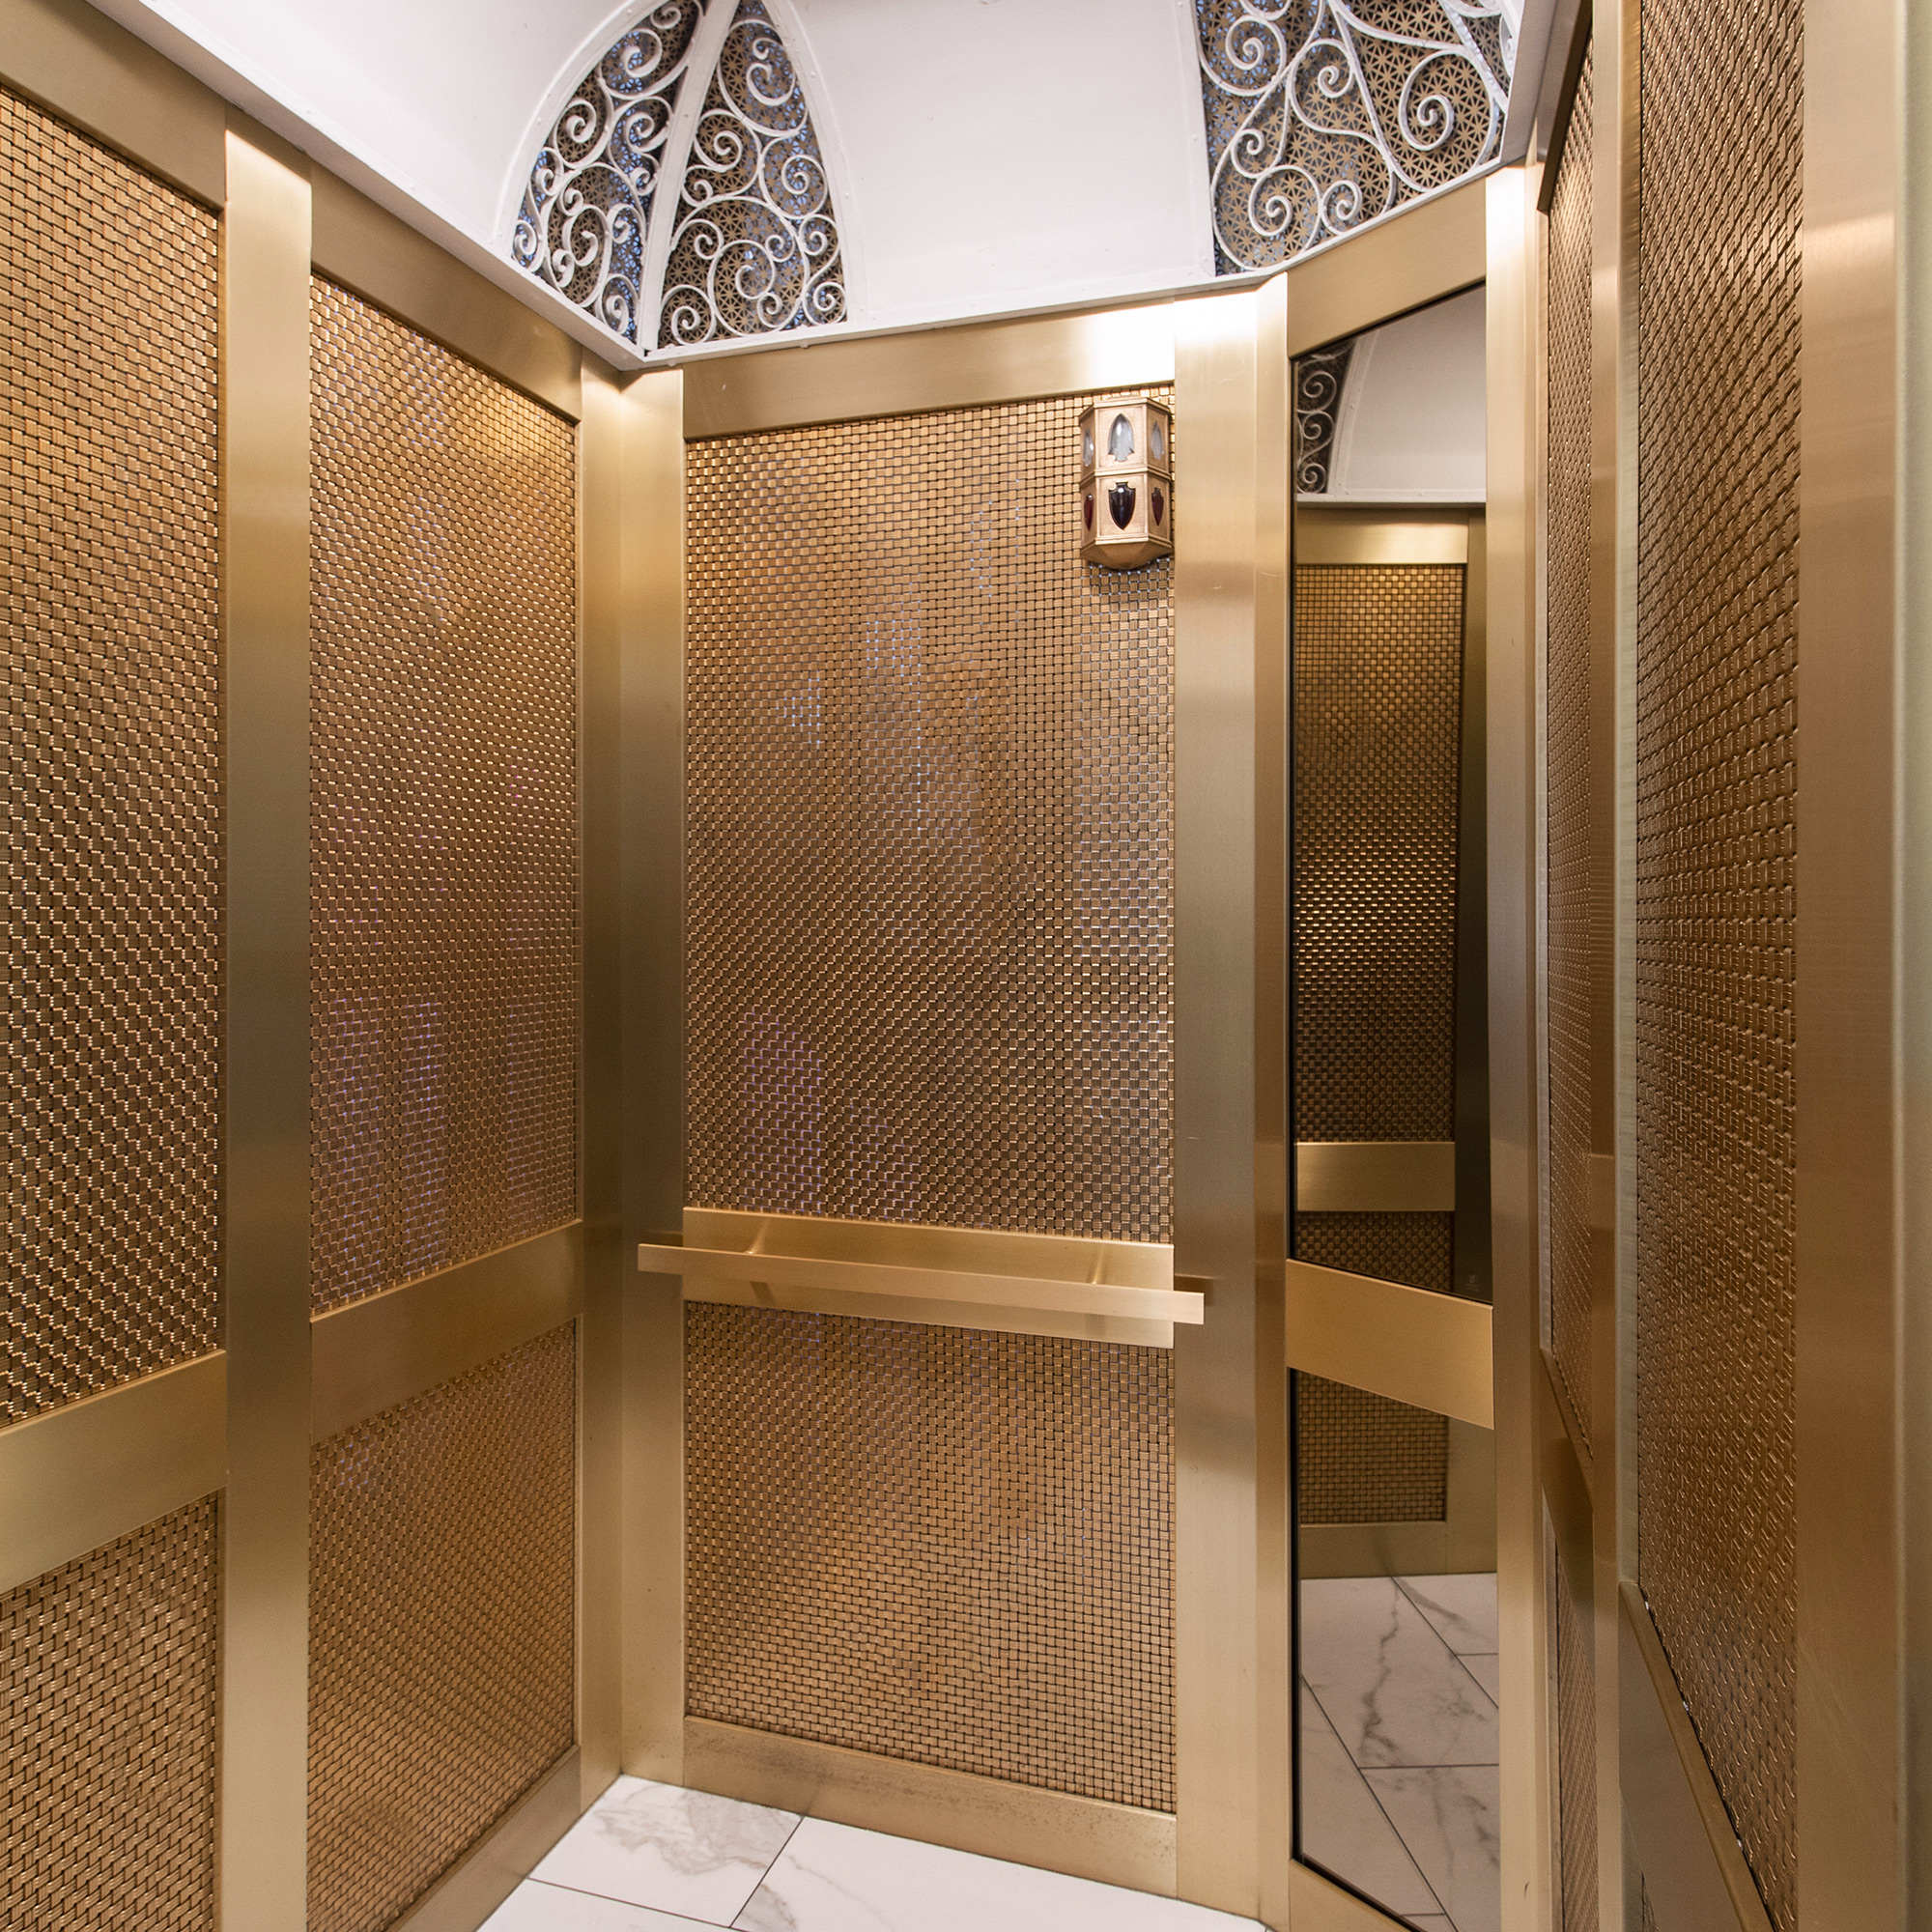 Floor to ceiling wire mesh panels make for a classic and elegant design.